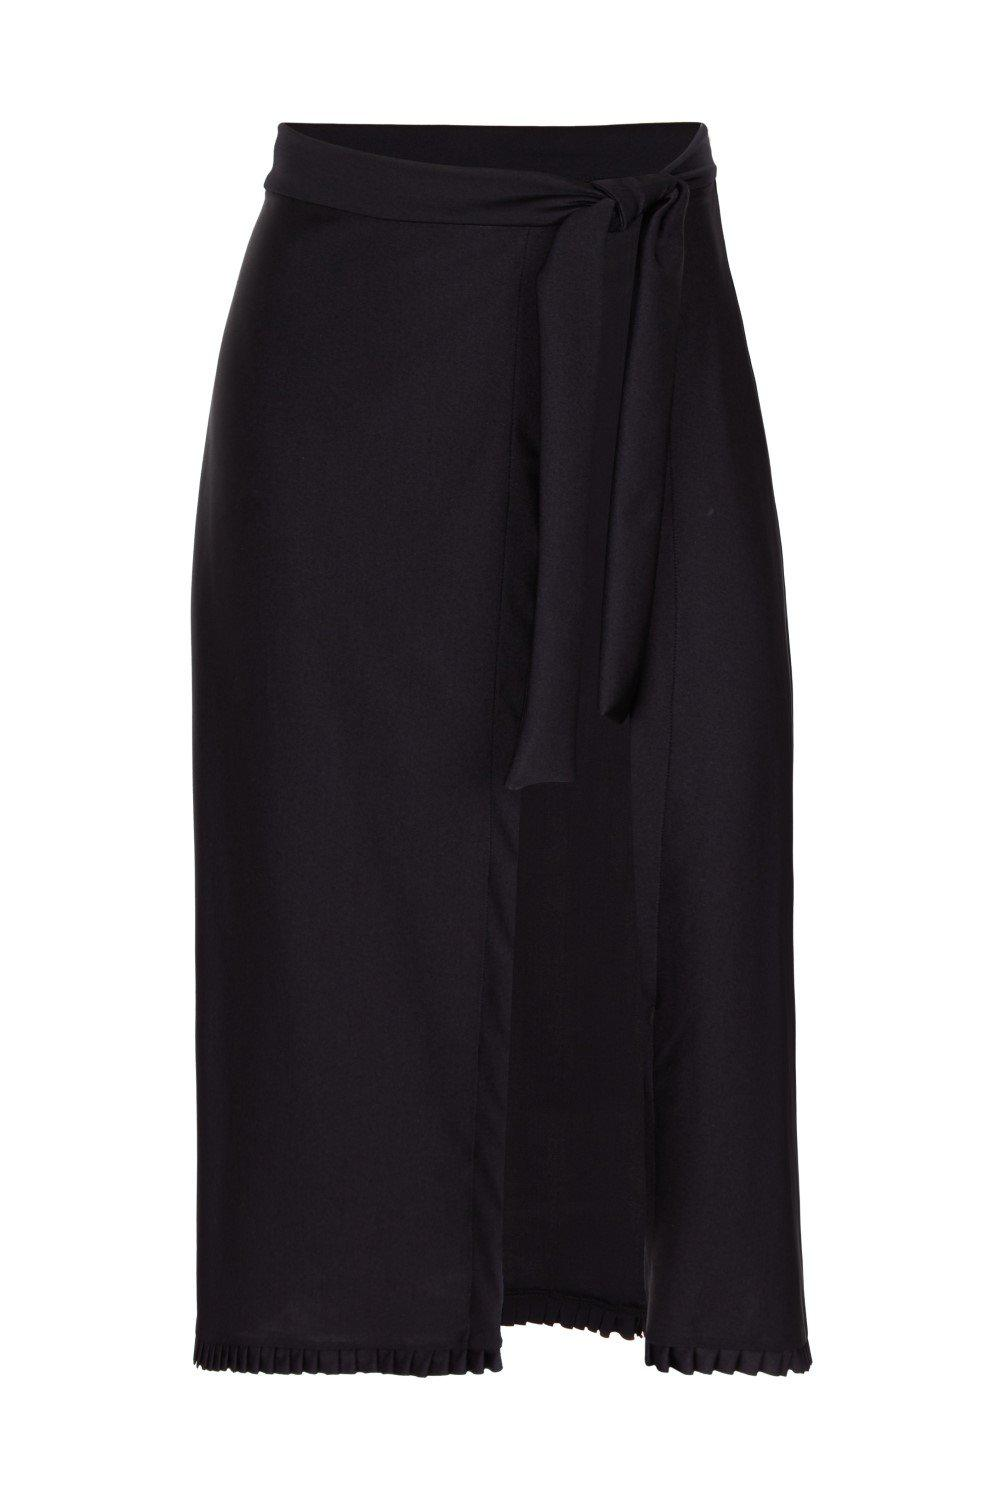 Fruits Exotiques Solid Pareo Skirt with Frills 3